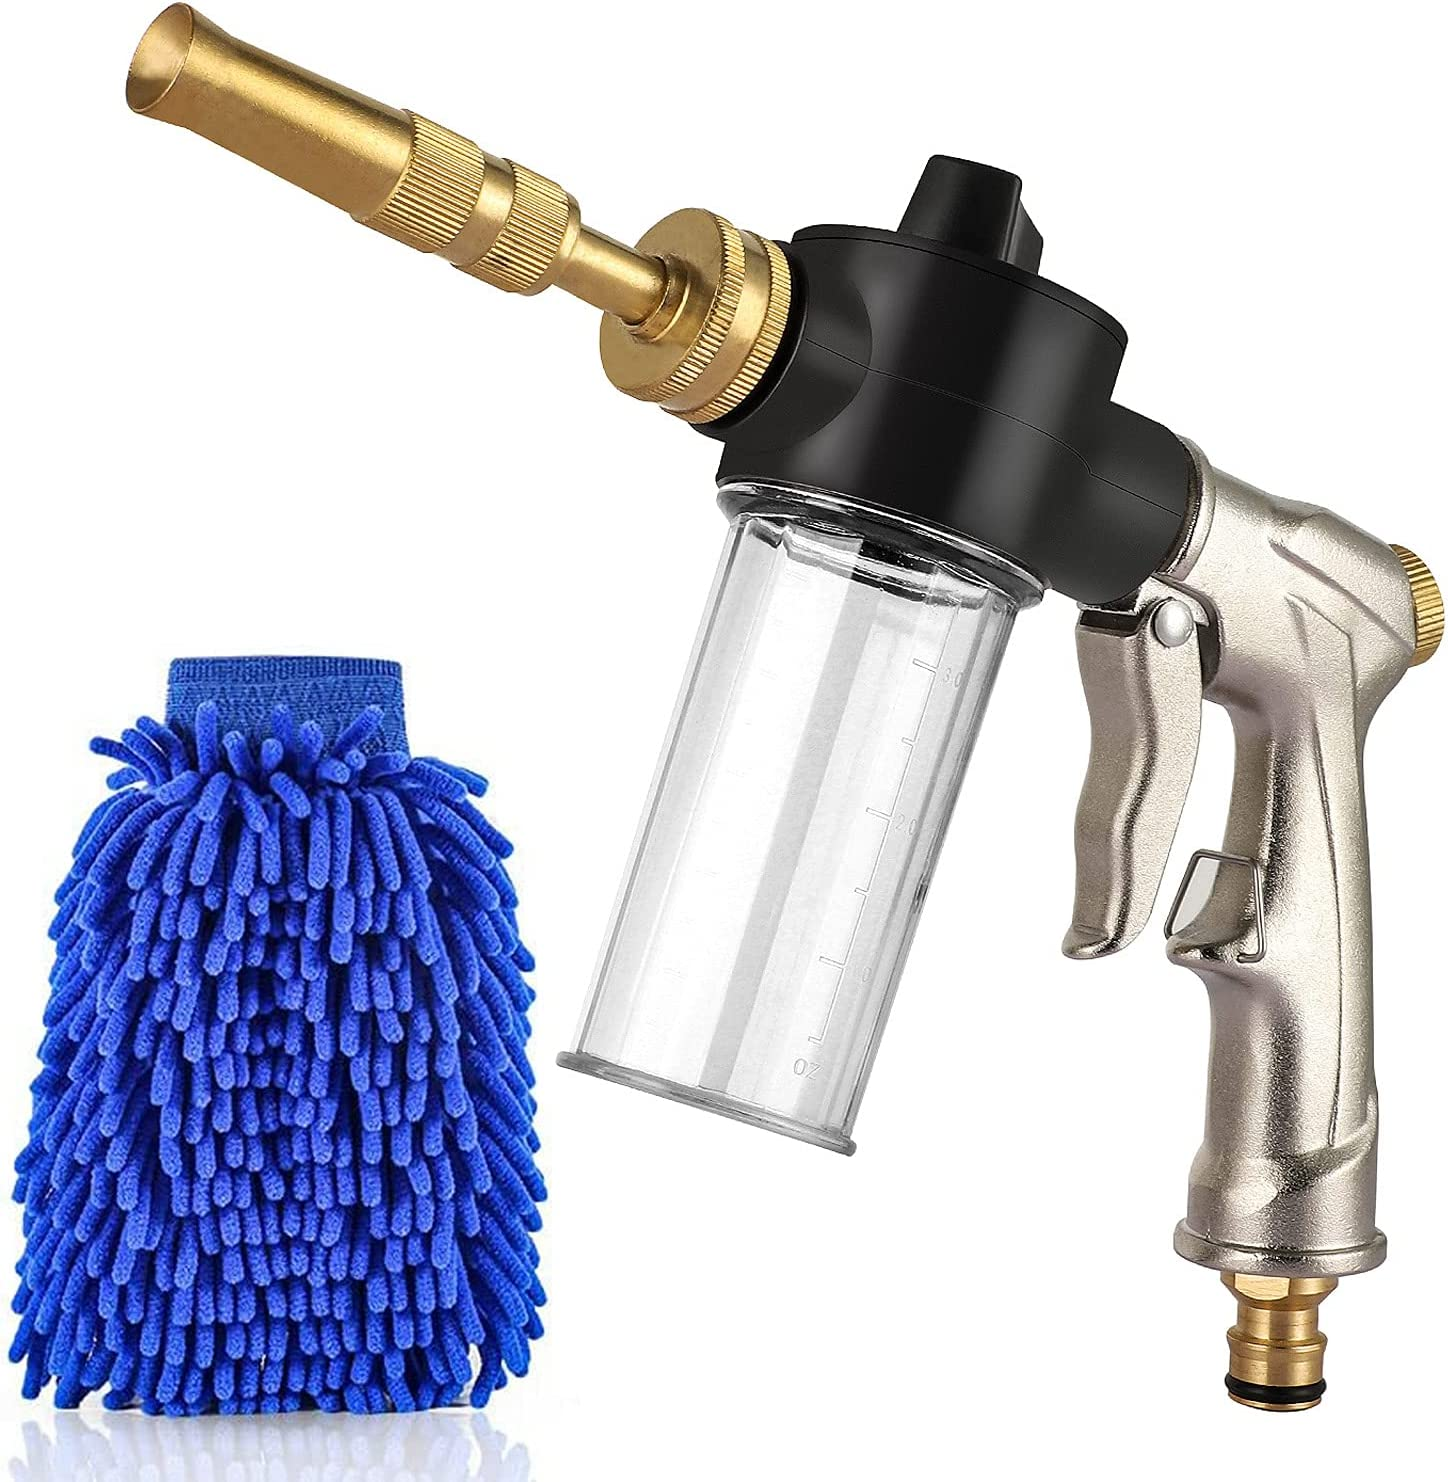 YeYouC Car Wash Foam Gun, Deluxe Car Wash Sprayer Garden Hose Spray Nozzle with 100cc Bottle, 3 Spray Patterns Foam Blaster for Car Washing, Plants Watering and Pets Showering